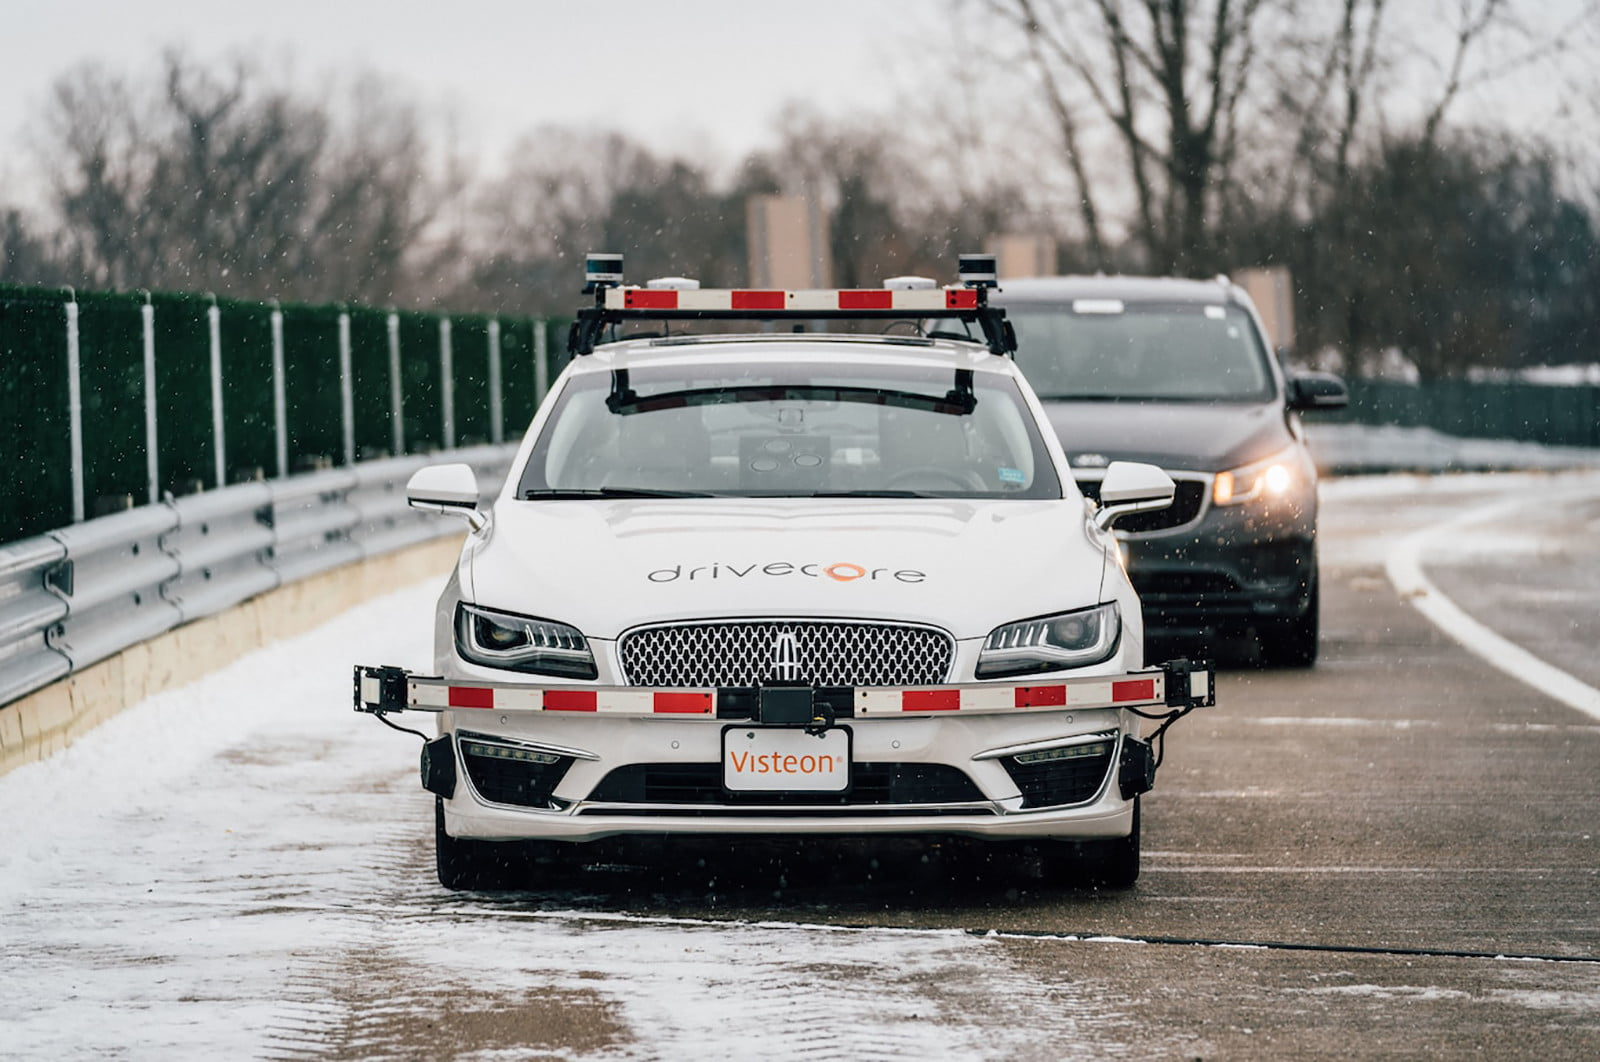 worlds first highway test facility for autonomous vehicle opens in michigan american center mobility  2